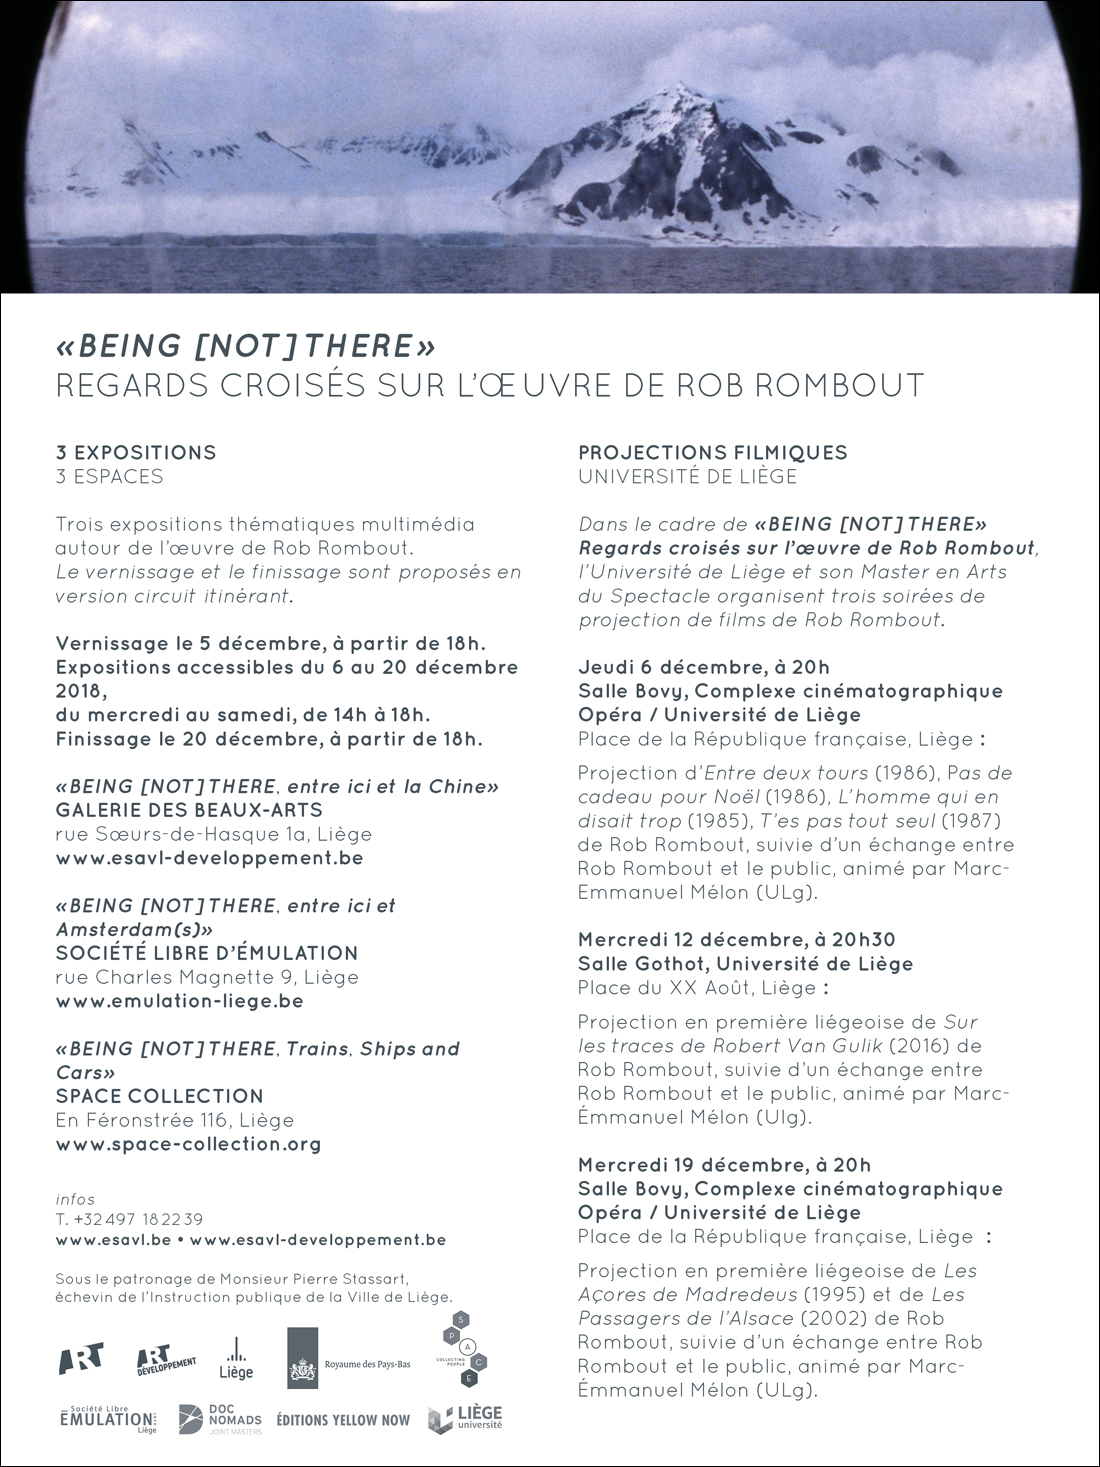 ROB-ROMBOUT-NEWSLETTER-1000(100)